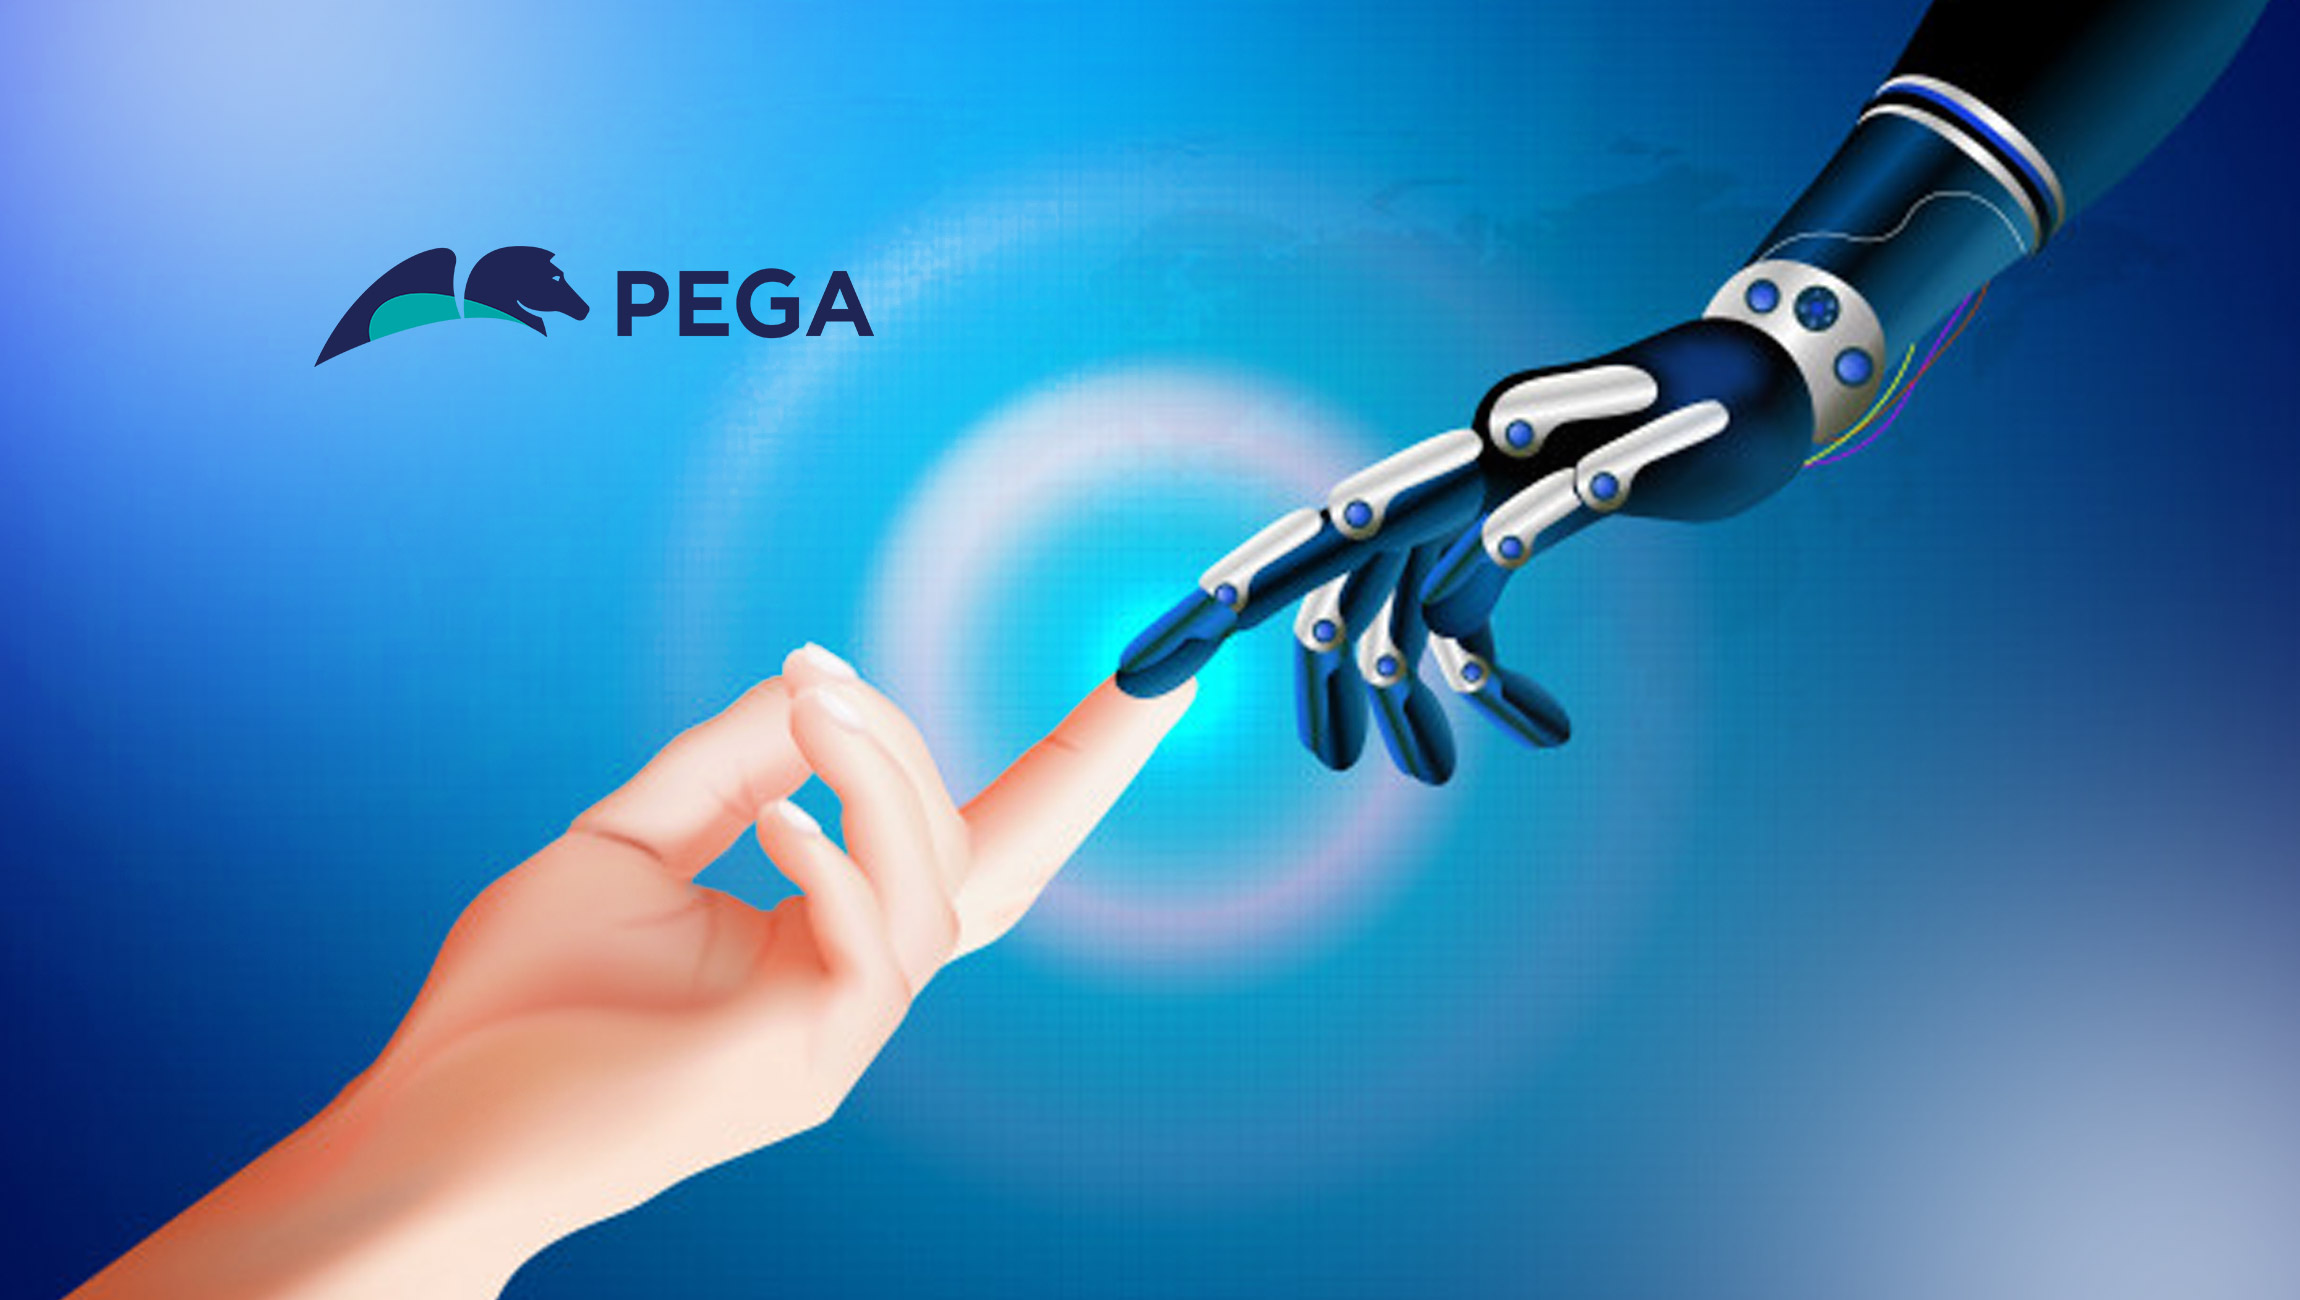 Pega Named a Visionary in Gartner's Magic Quadrant for RPA Software